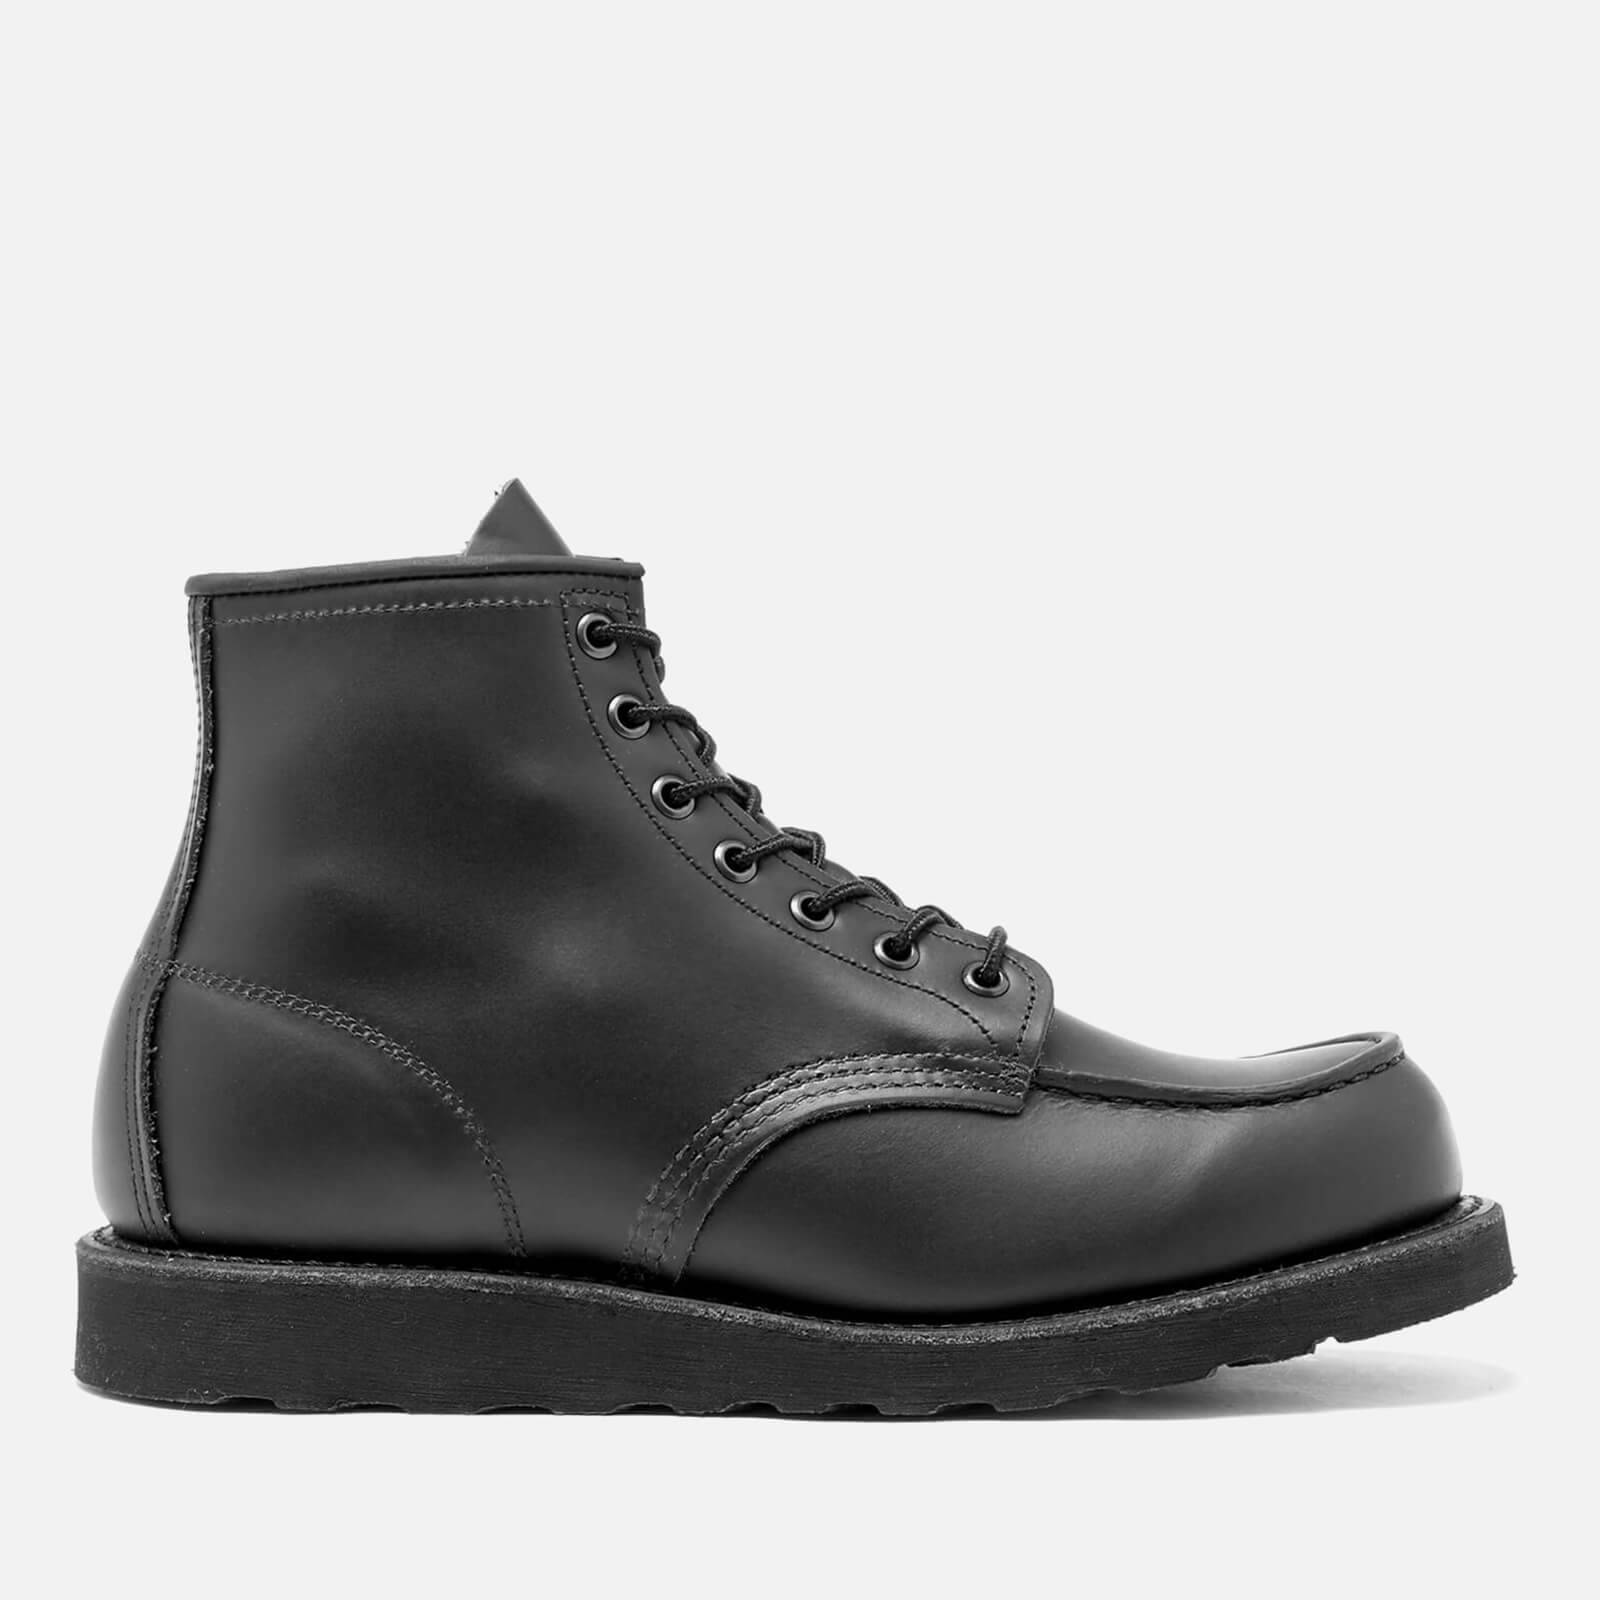 Red Wing Men's 6 Inch Moc Toe Leather Lace Up Boots - Black Chrome - UK 10/US 11